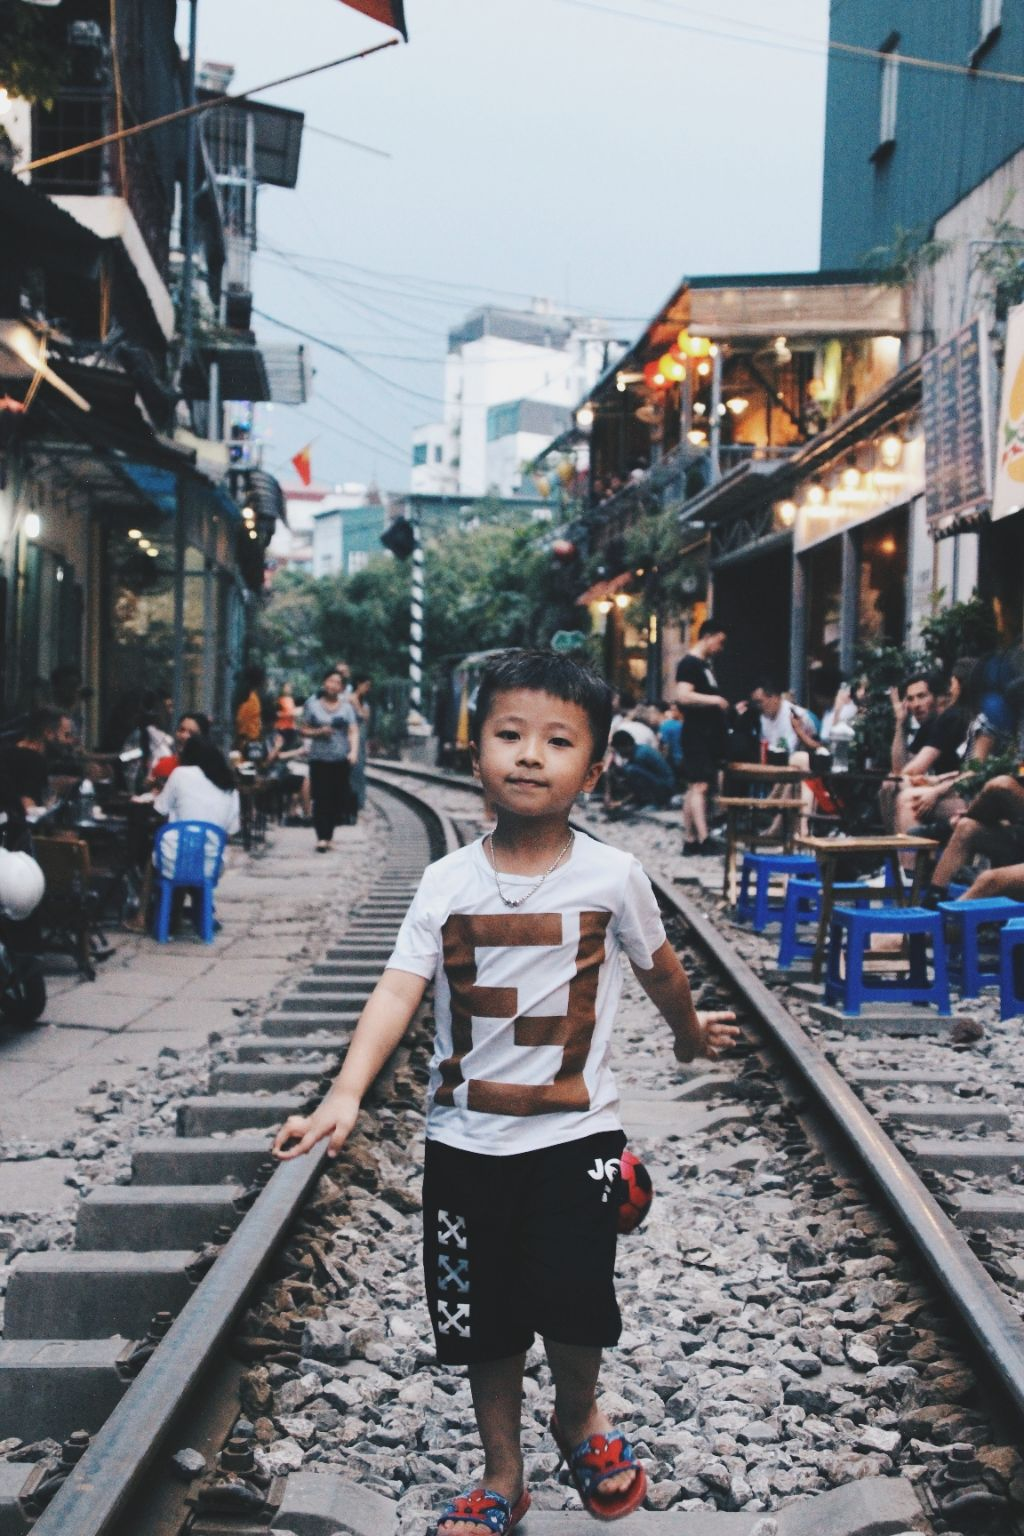 Photo of Hanoi Street Train By gautham padmanabhan